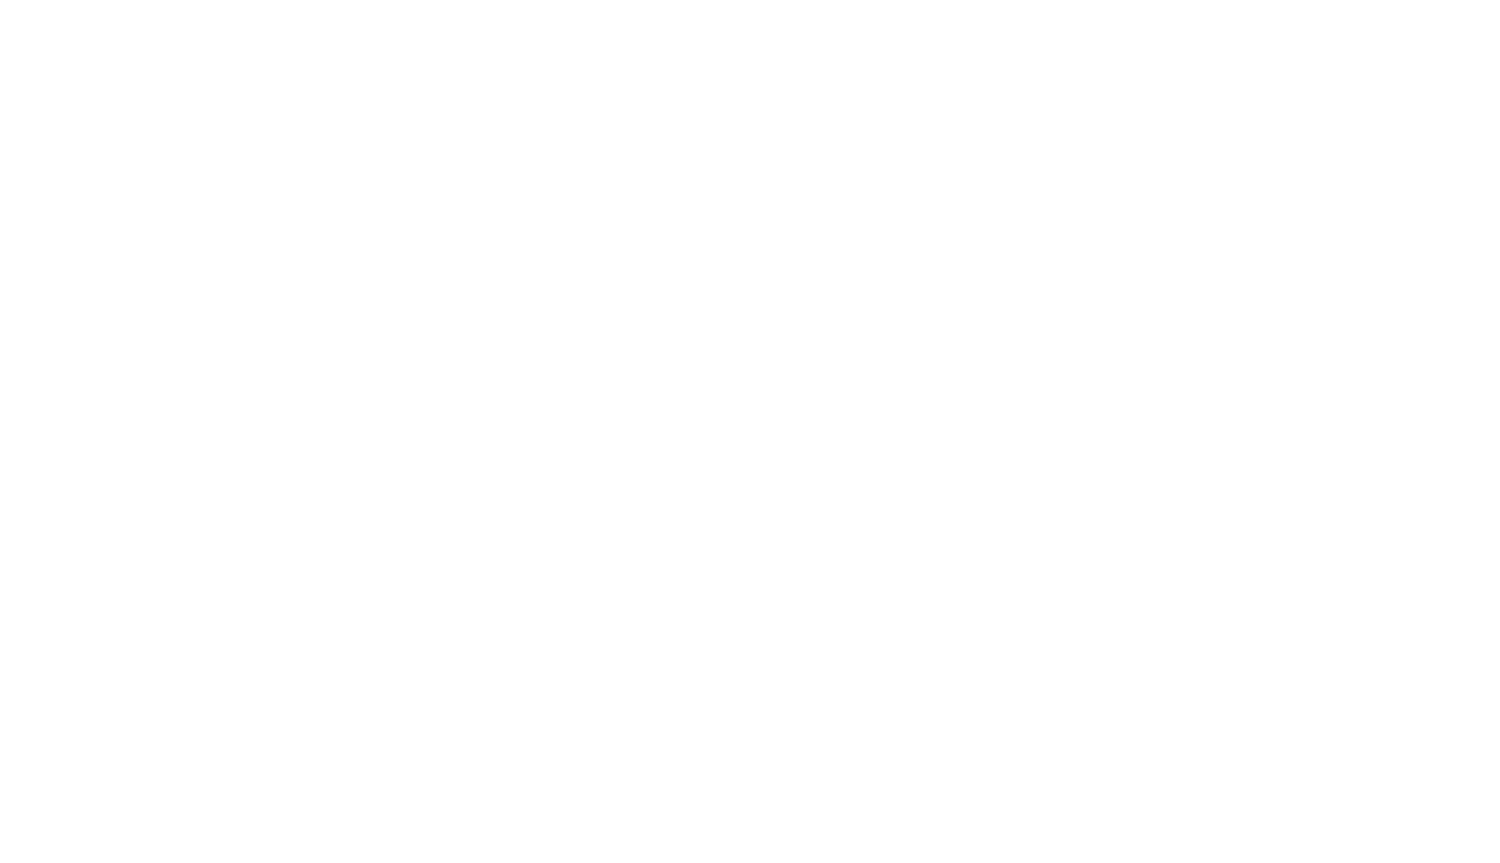 Alabama Rivers